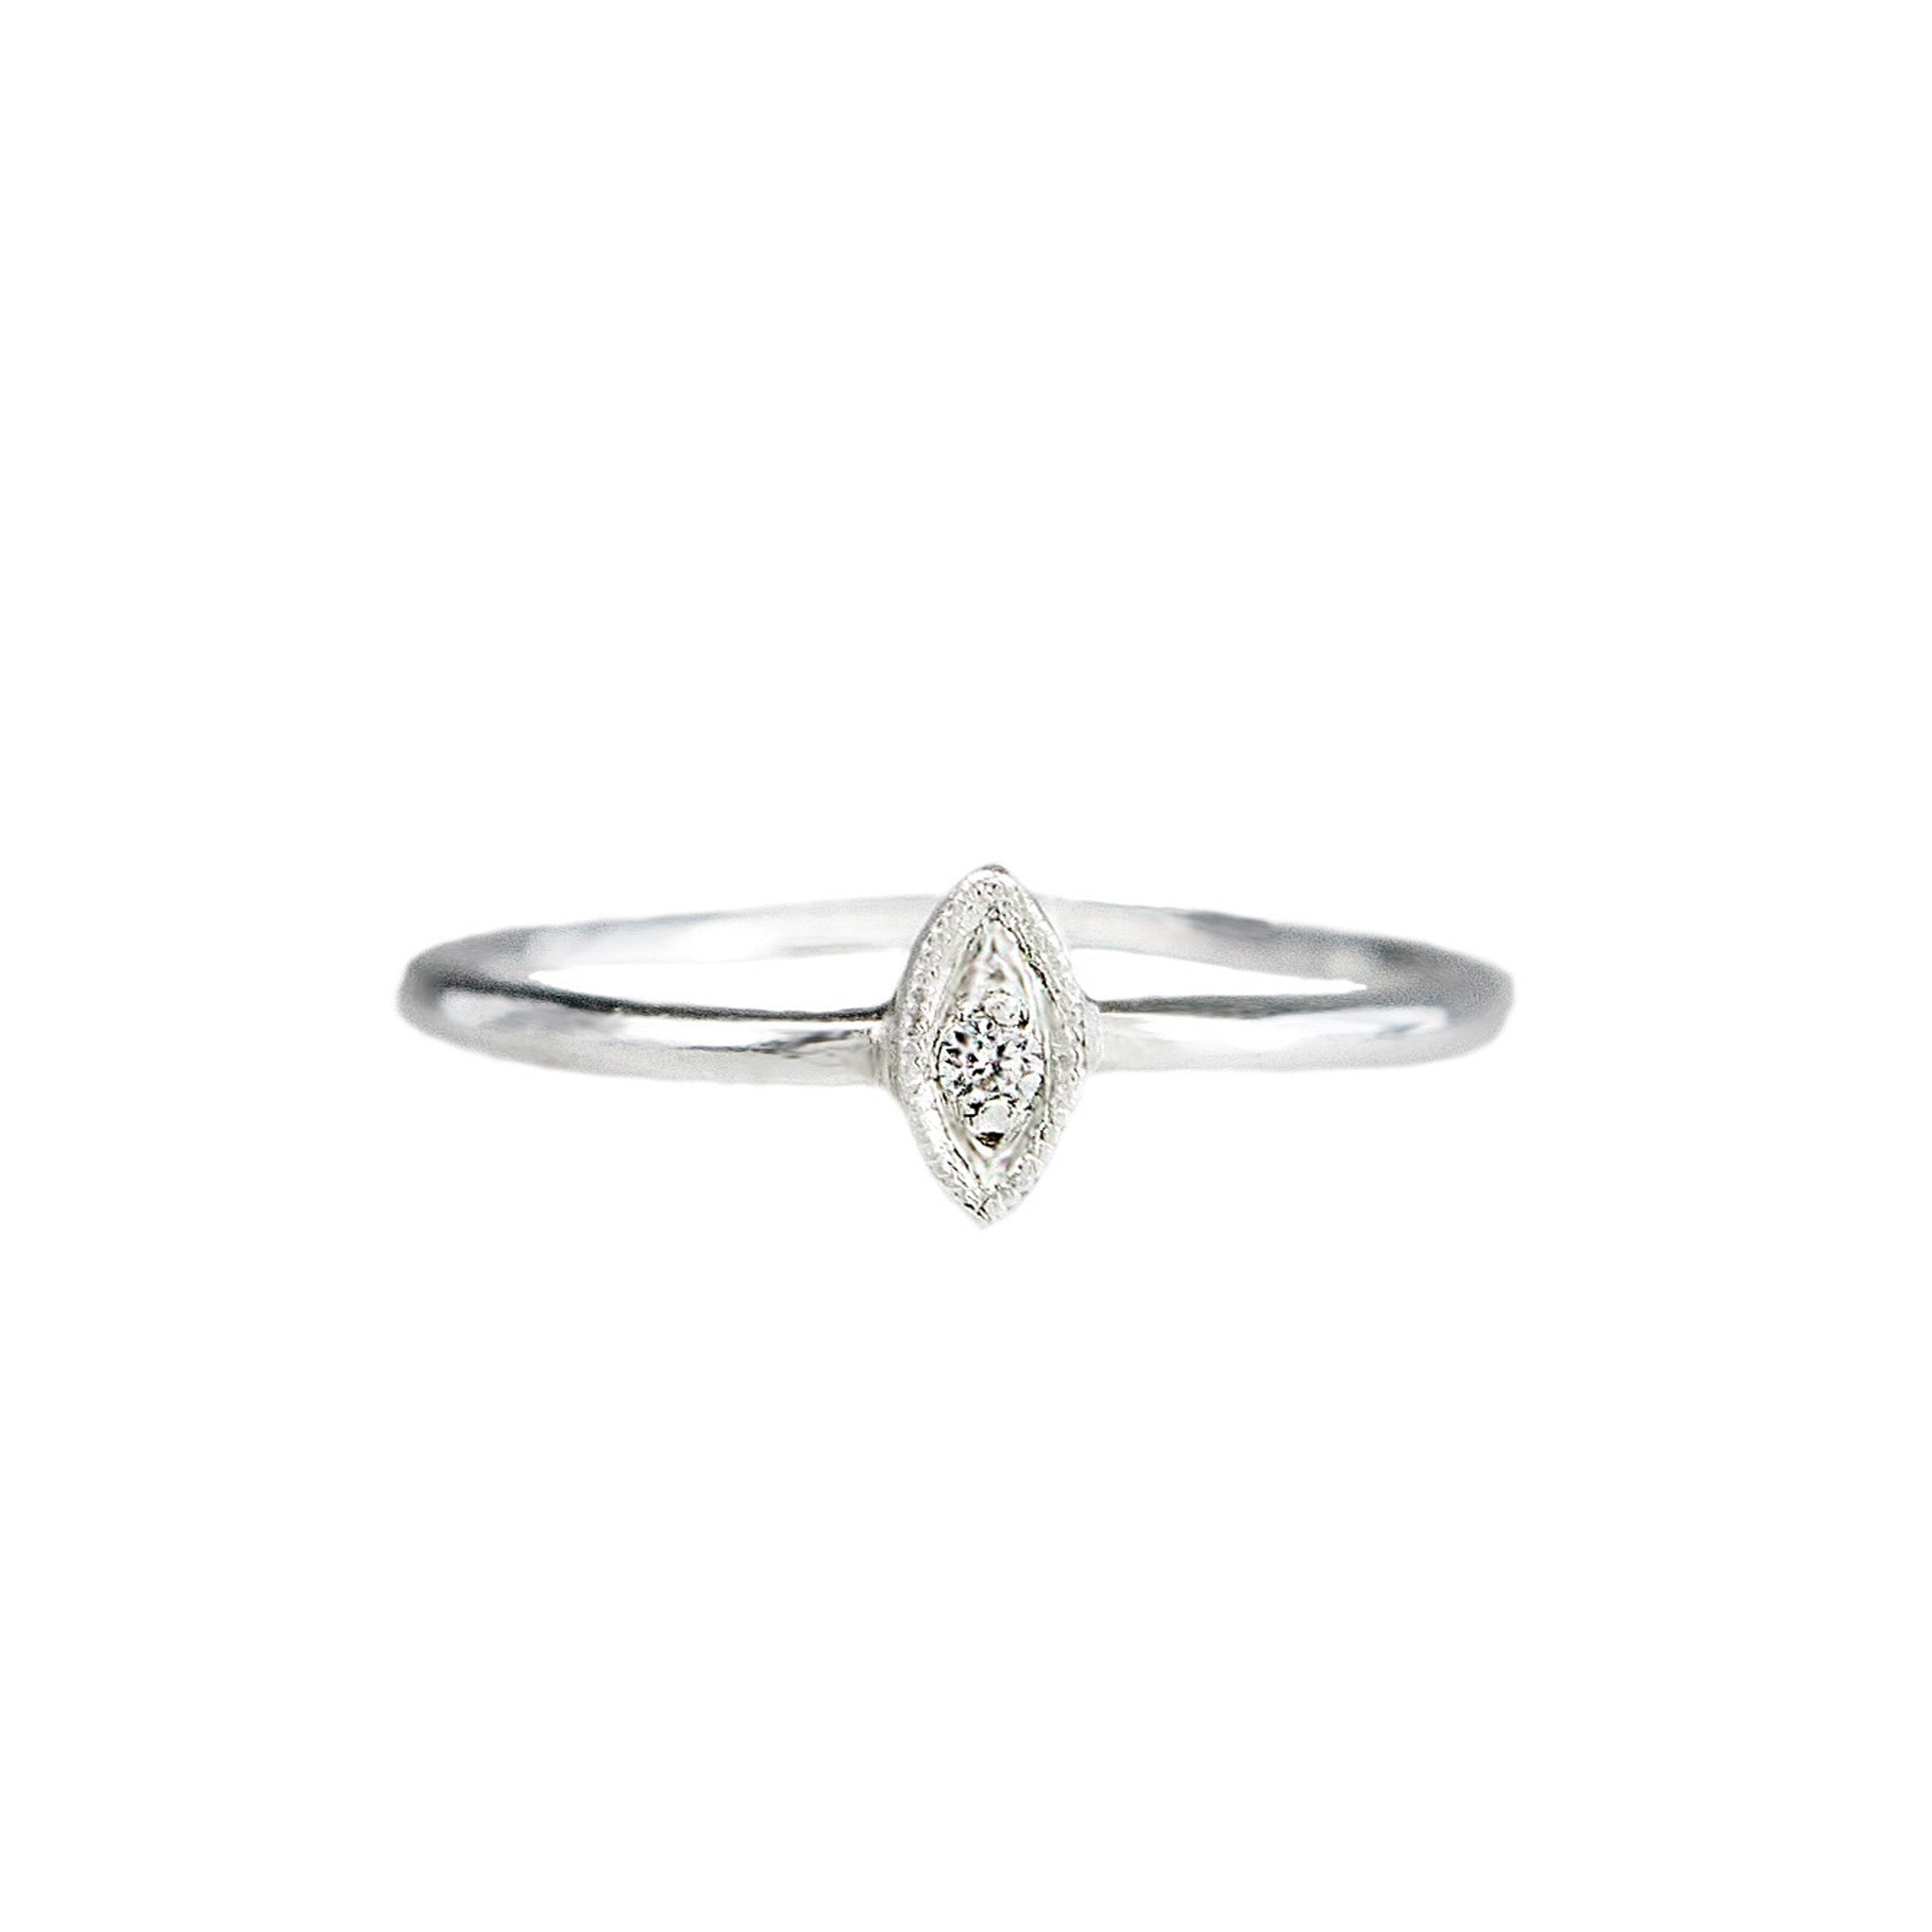 No.8 Ethical Proposal Ring